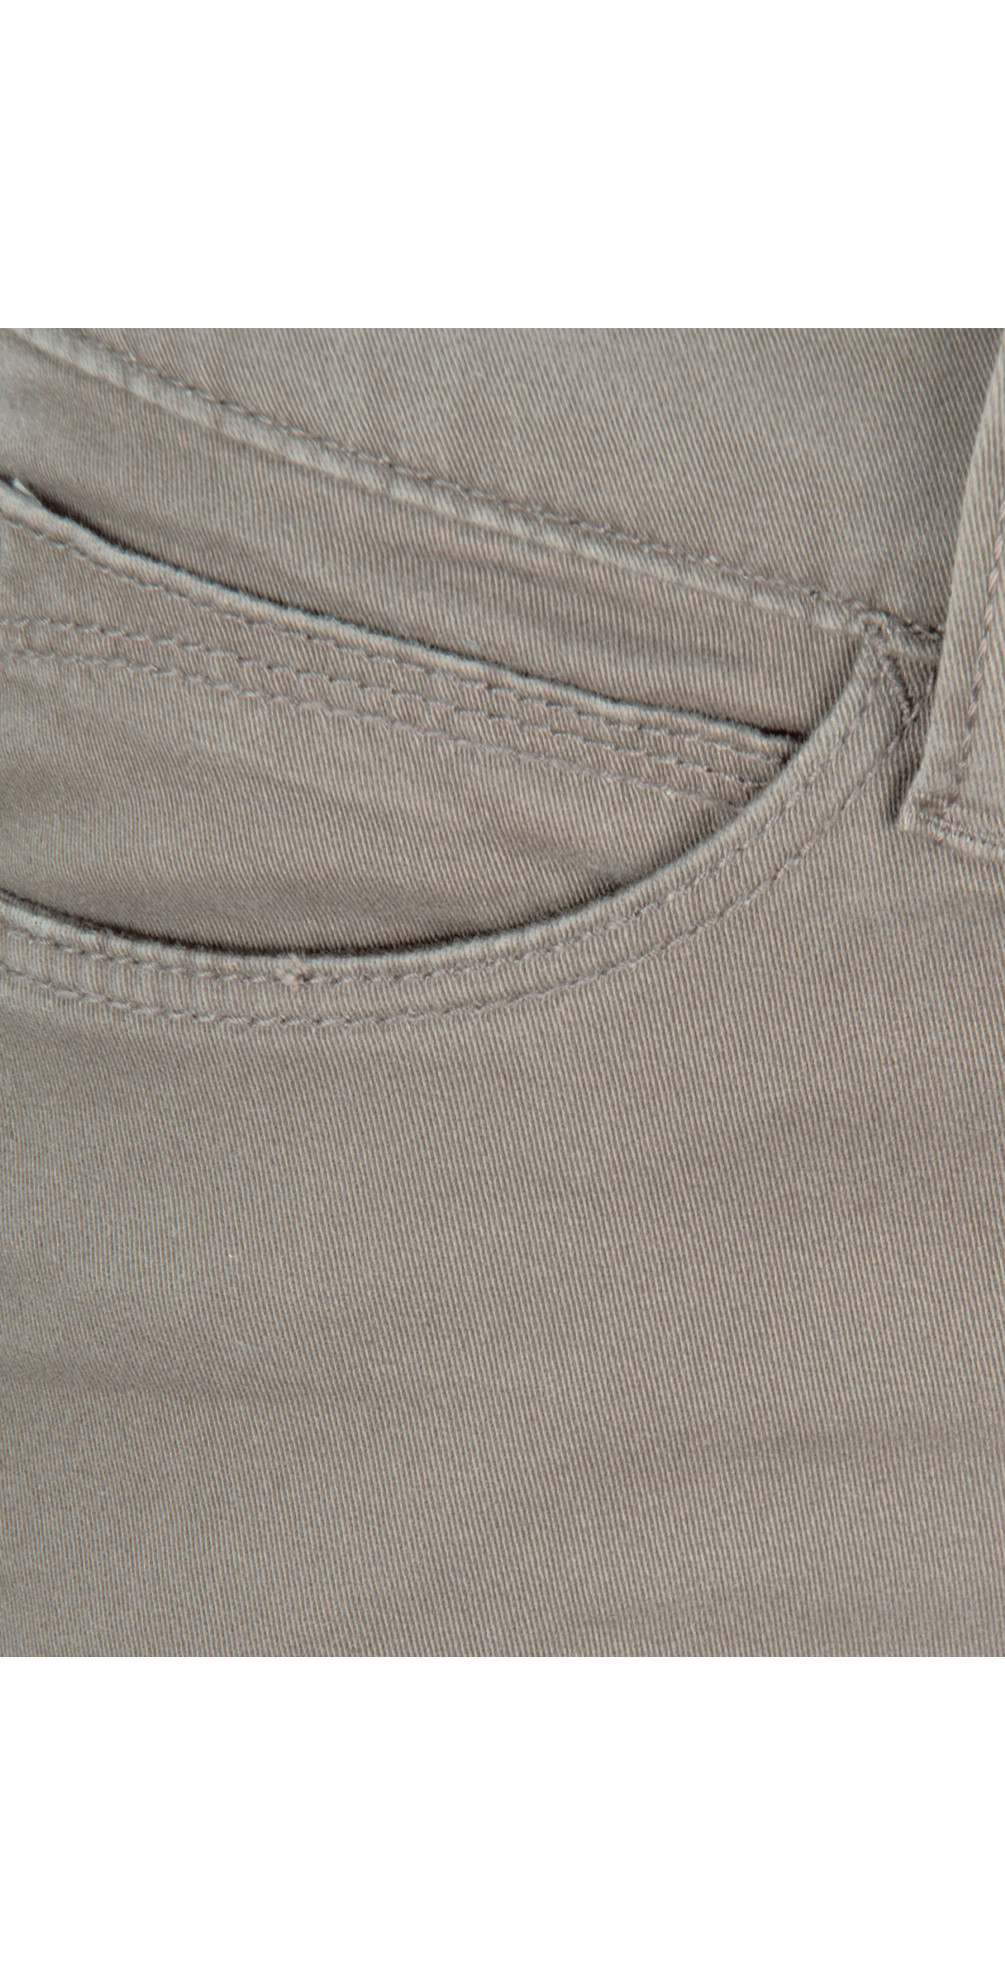 Skinny Cotton Stretch Pants main image